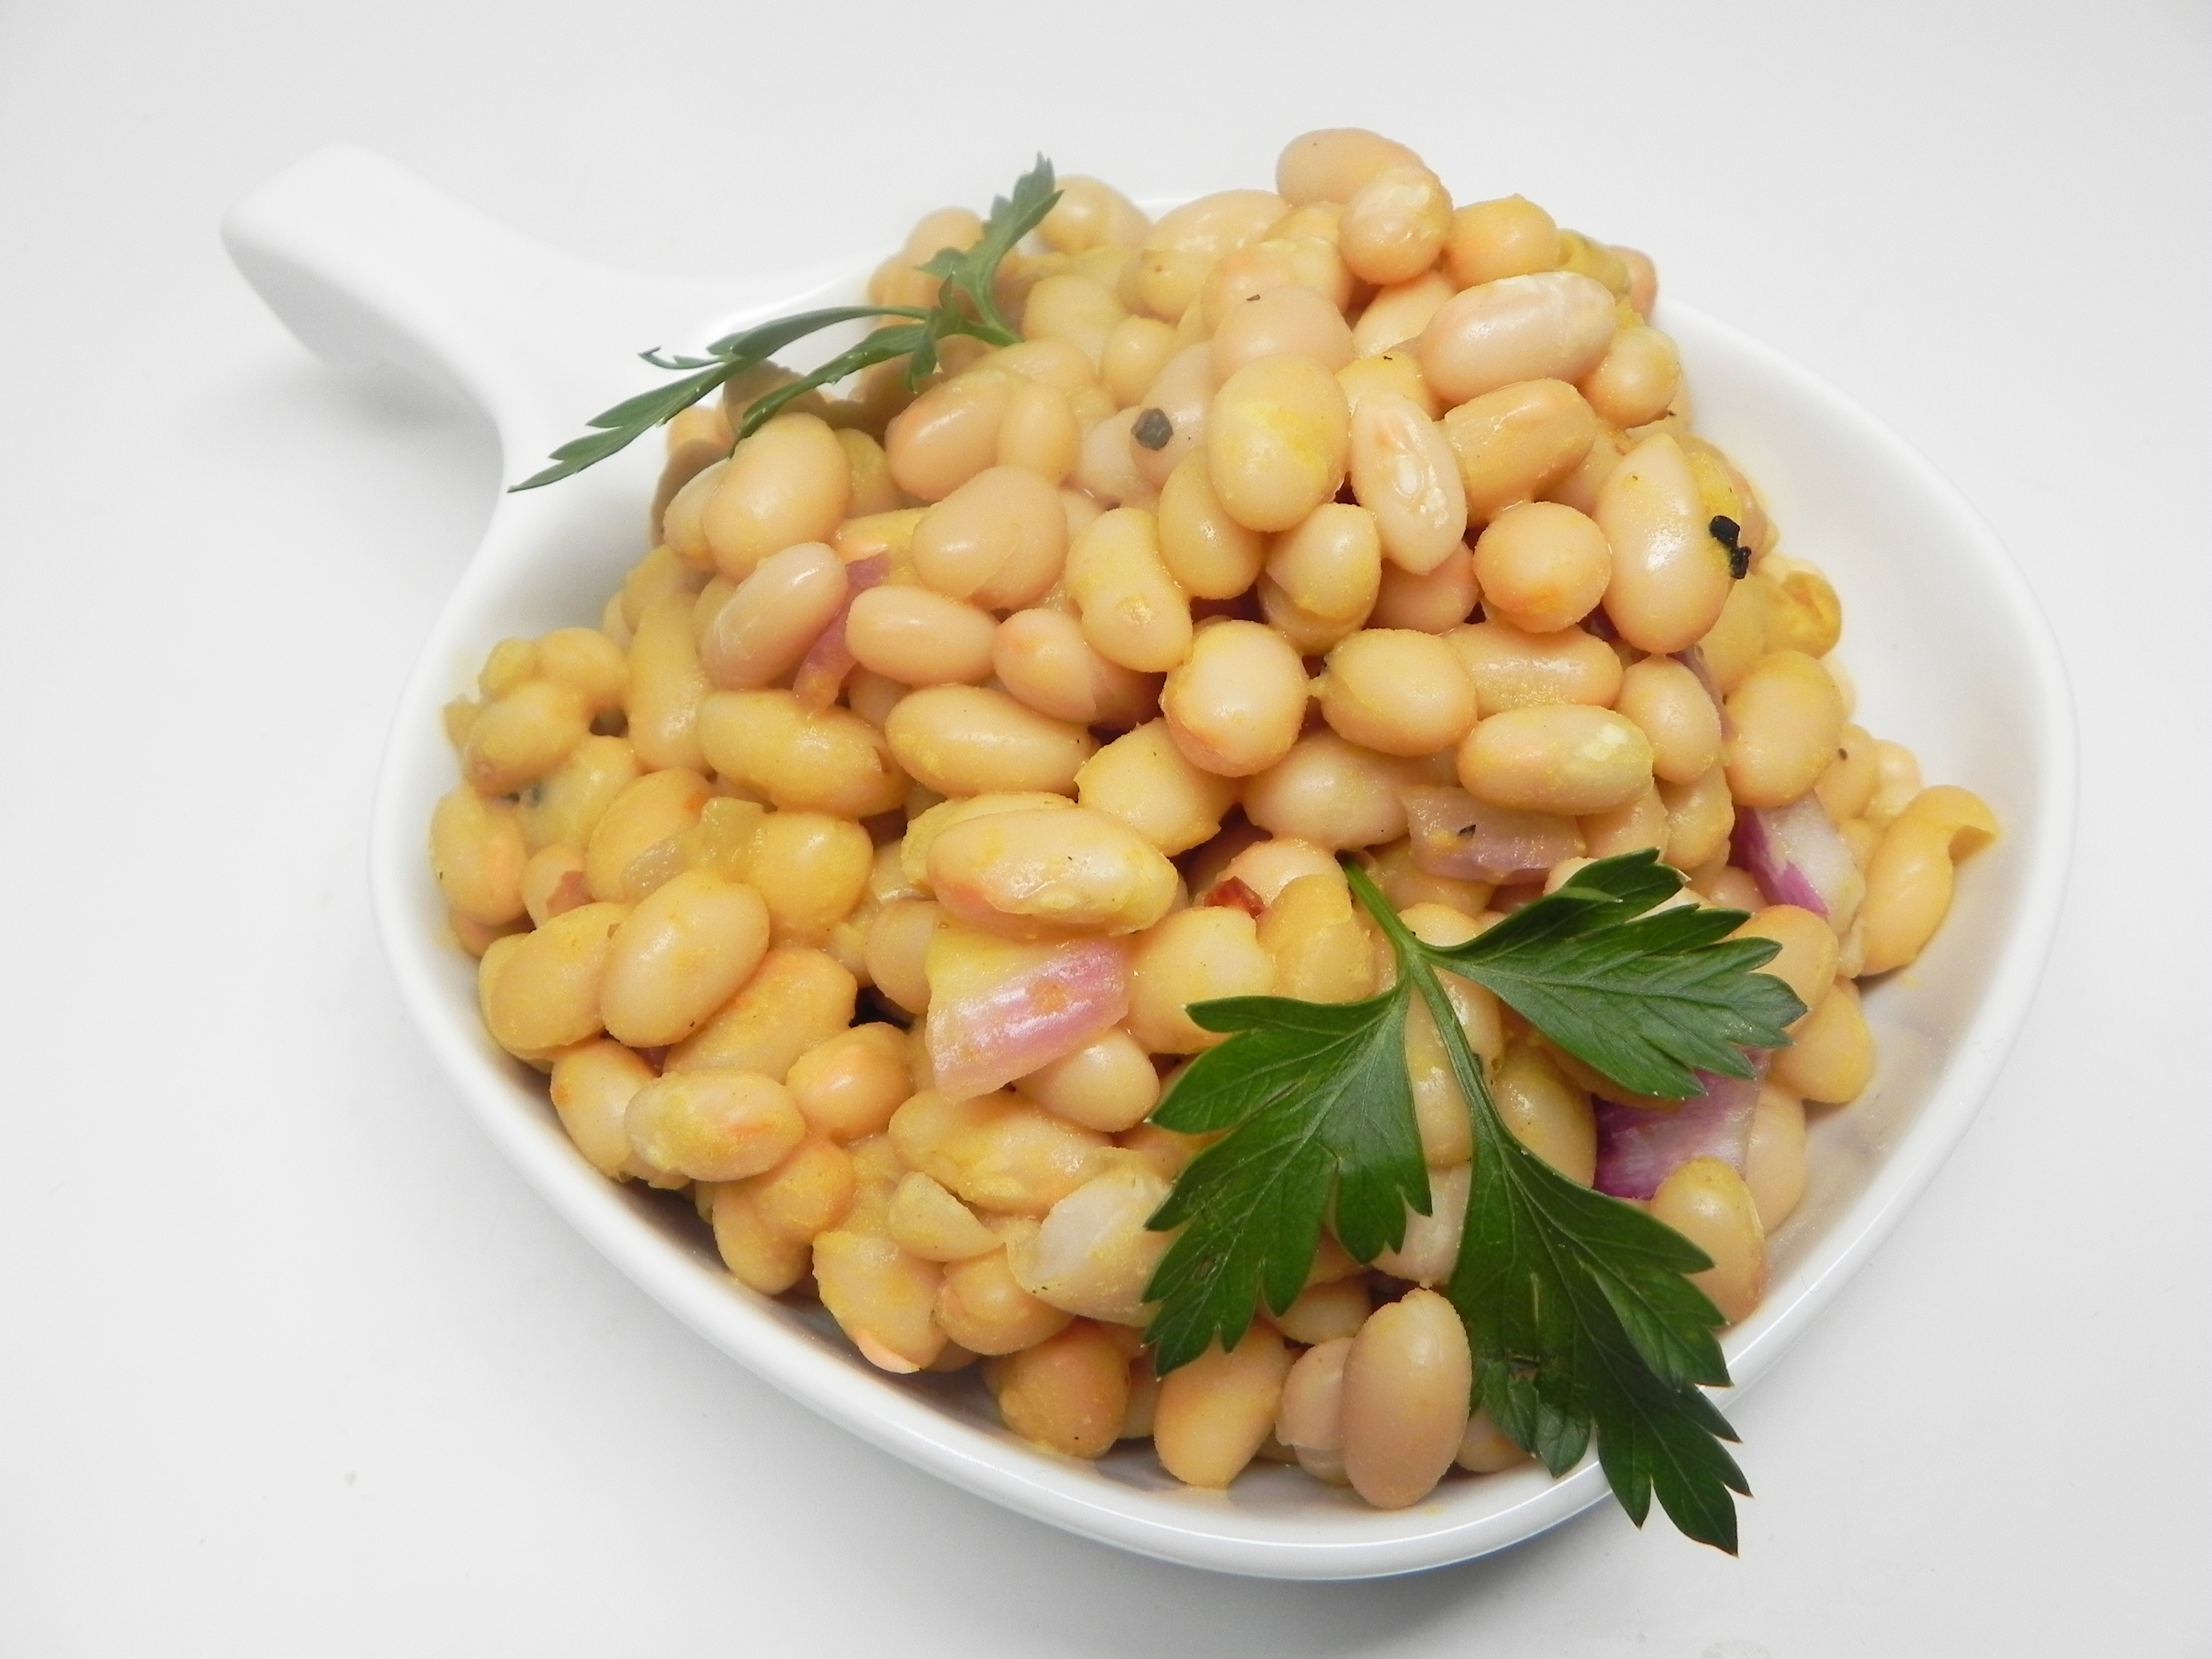 Feves au Lard Maison (Baked Beans with Maple Syrup)